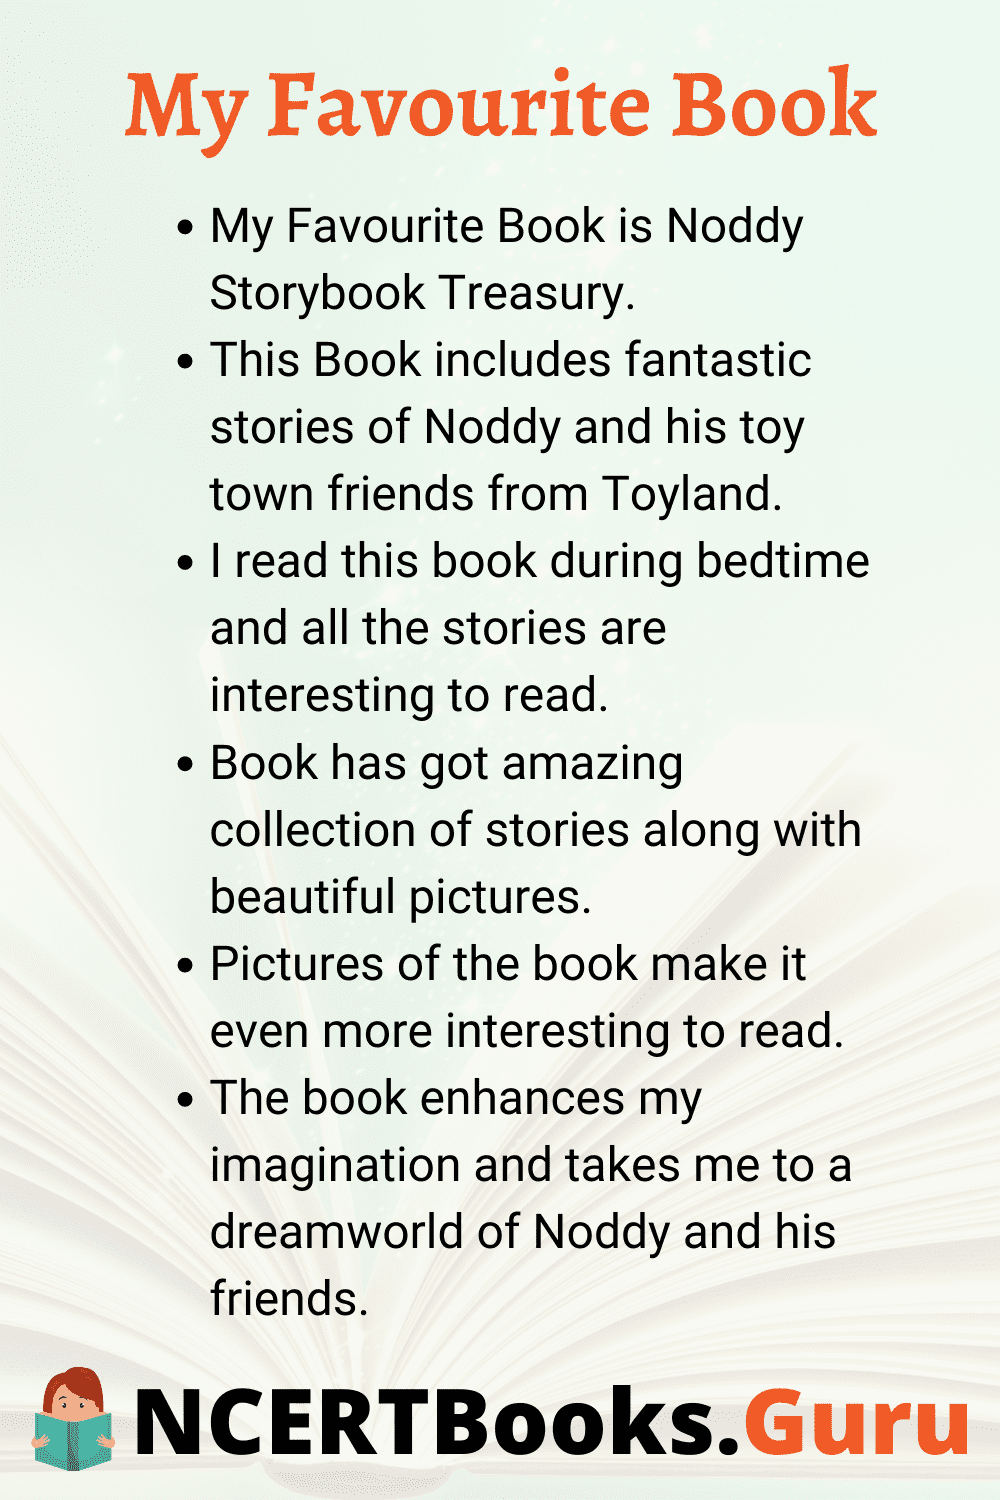 Essay on My Favourite Book